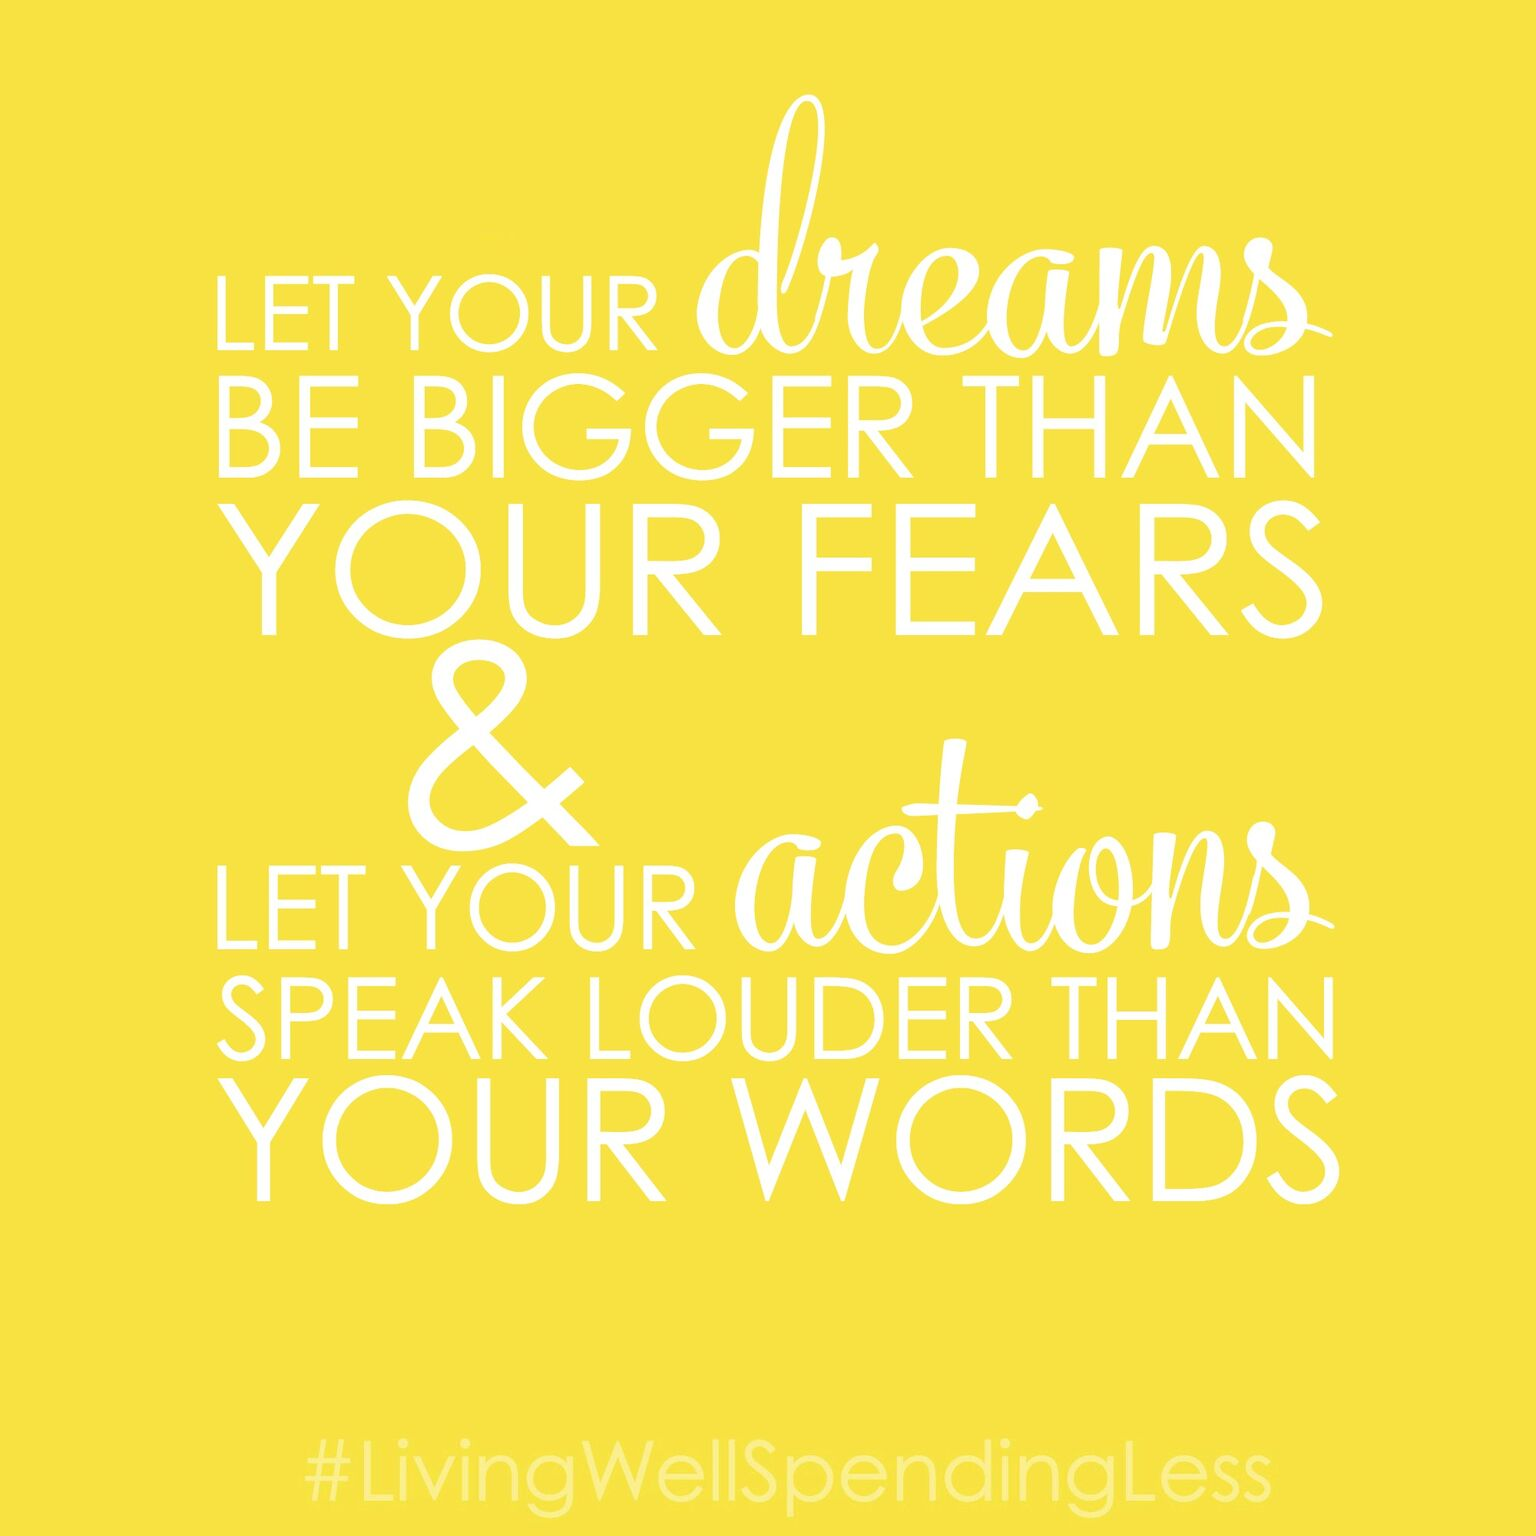 Let your dreams be bigger than your fears and let your actions speak louder than your words.